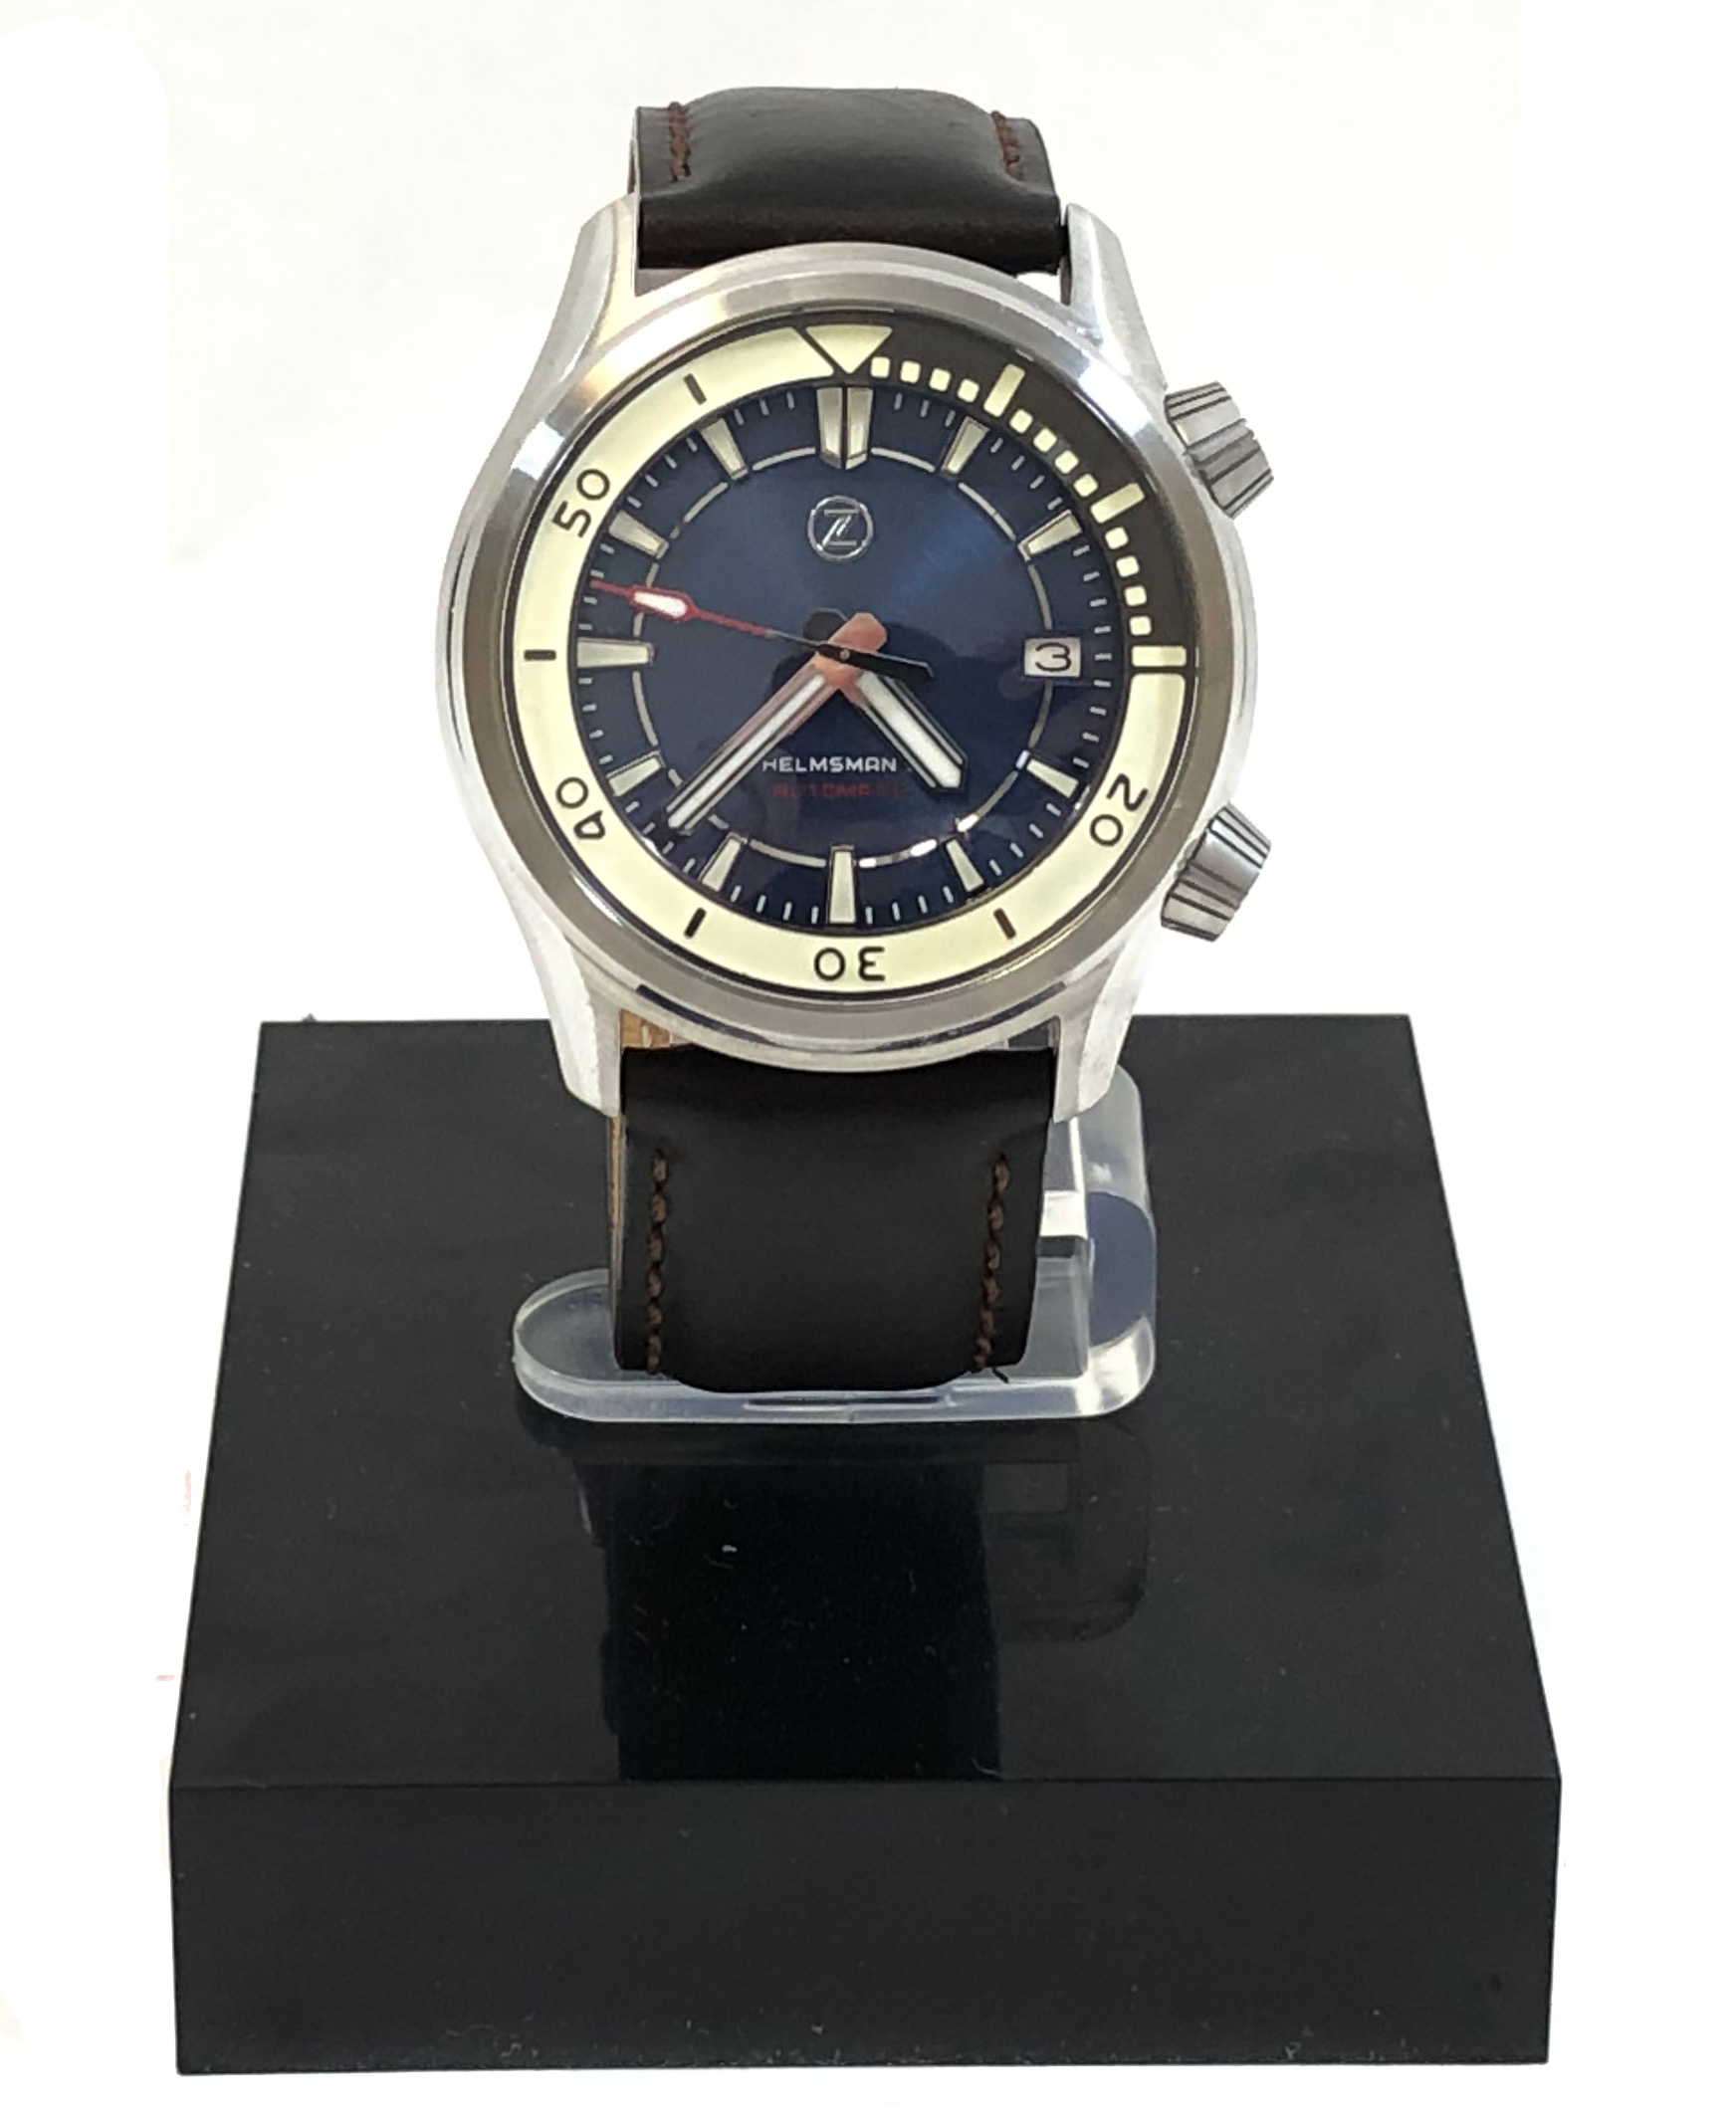 Zelos Helmsman 2 Steel Blue Automatic Divers Watch 42mm